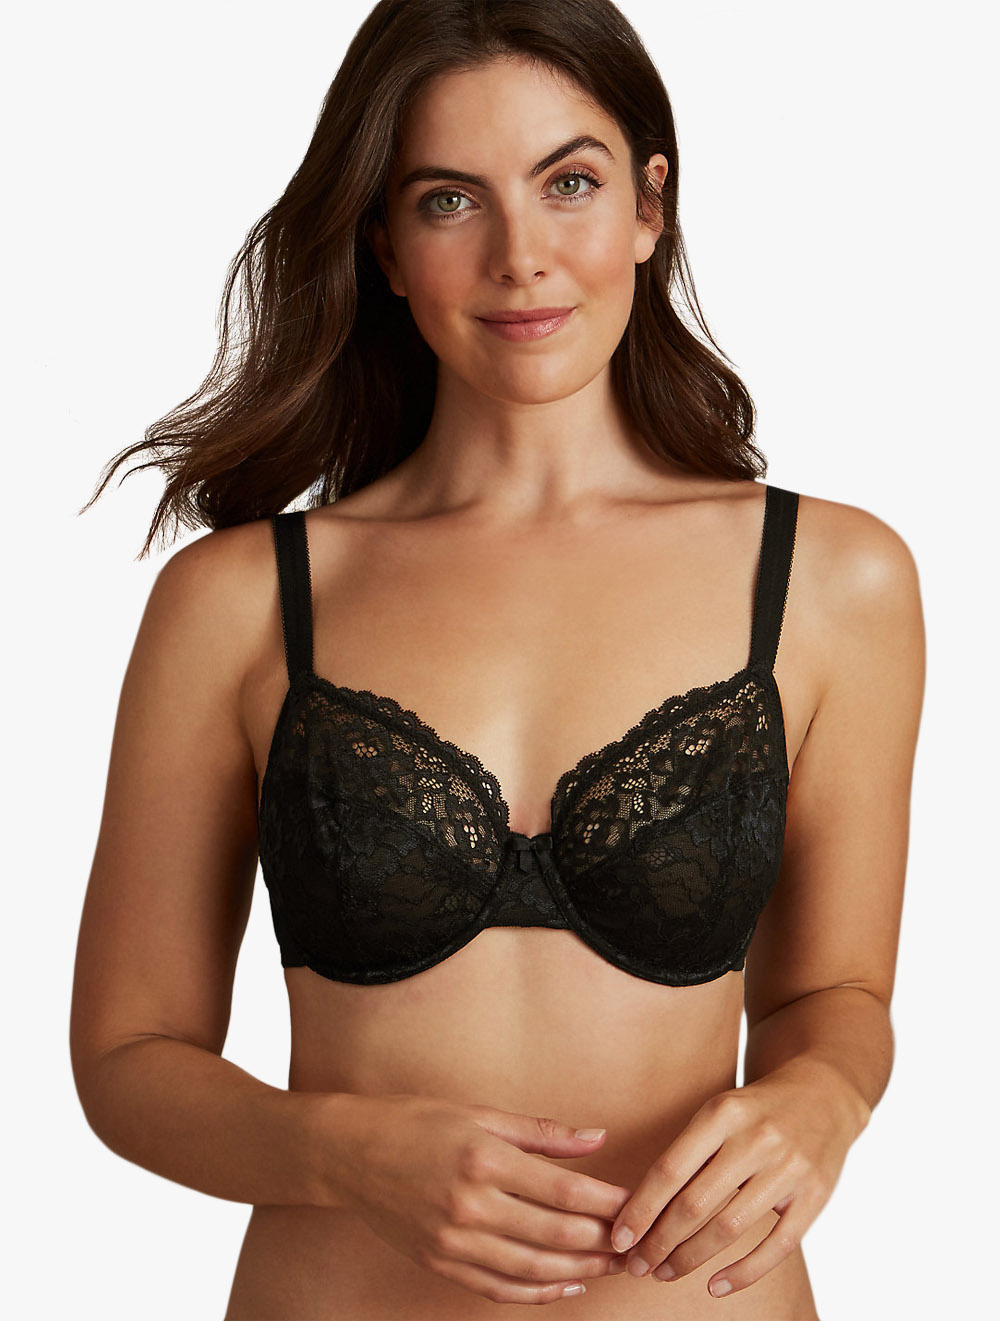 BEAUFORME LACE FULL CUP NON-PADDED or PADDED SUPPORT UNDERWIRED BRA ALL SIZES